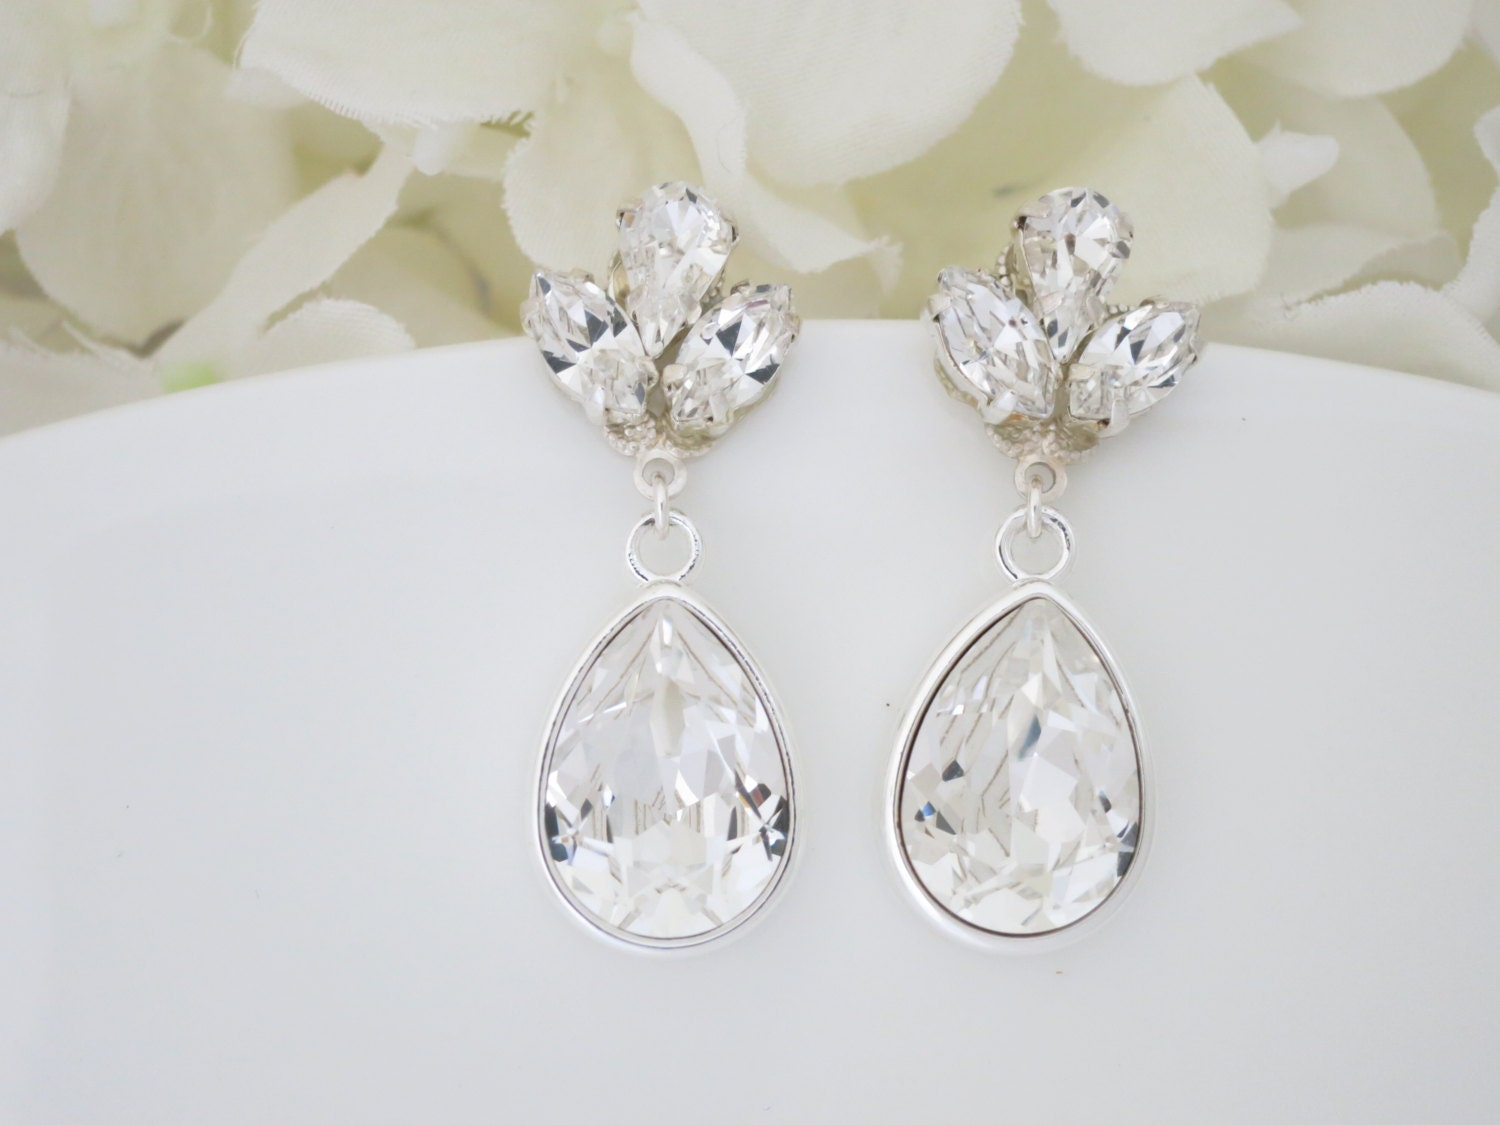 Swarovski teardrop wedding earring, Vintage style bridal earring, Crystal teardrop earring